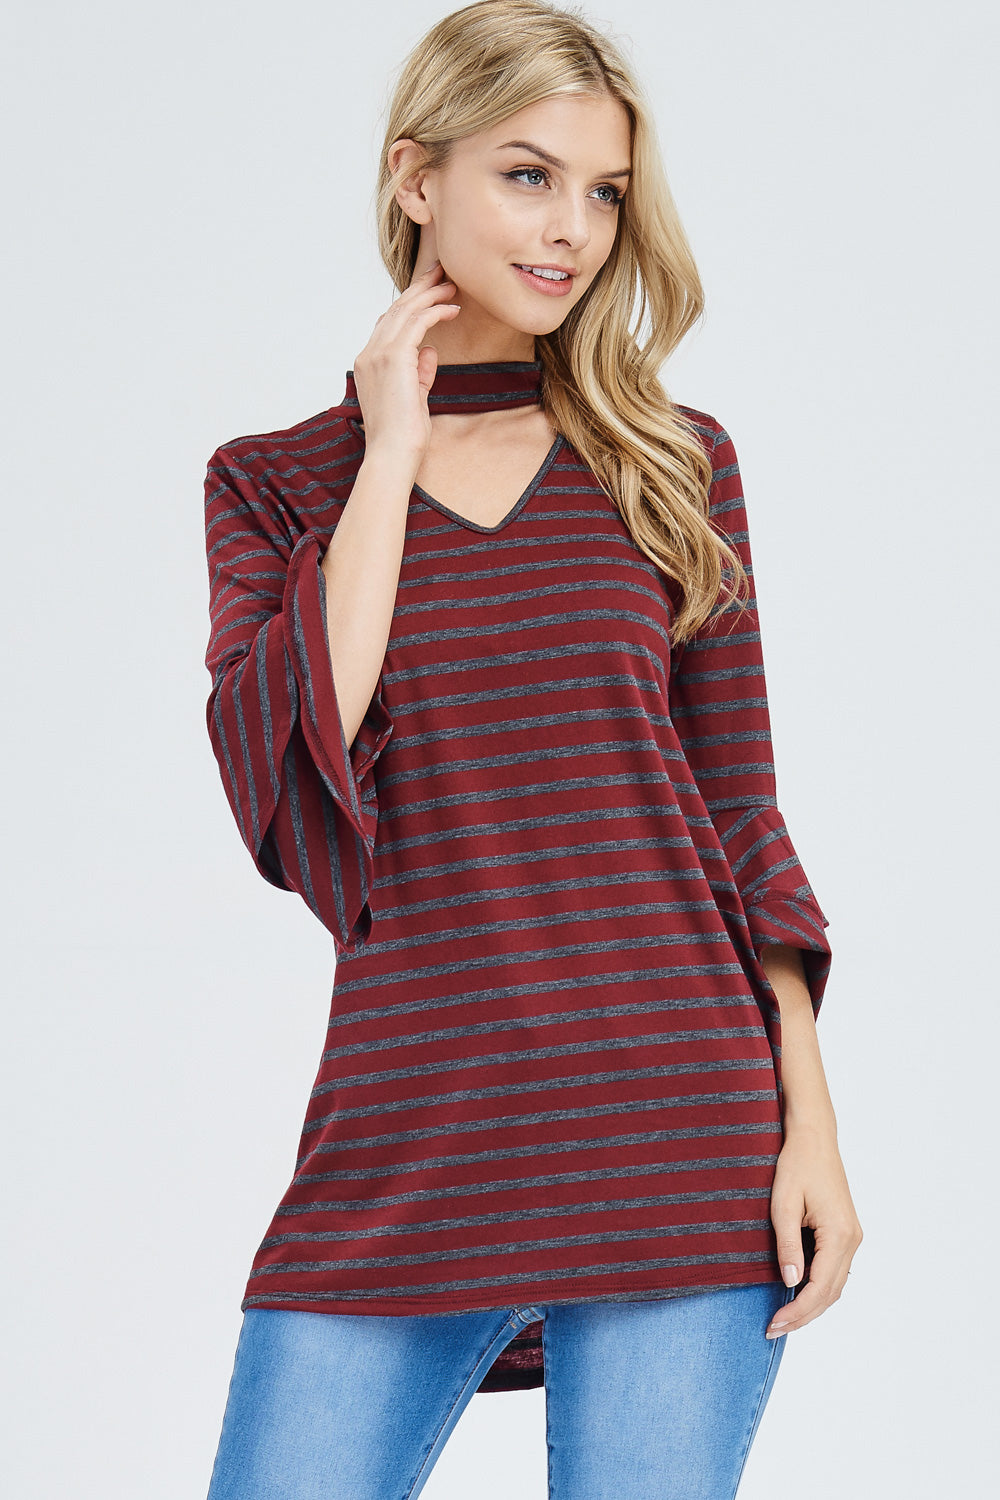 Stripe Choker Tunic - Burgundy